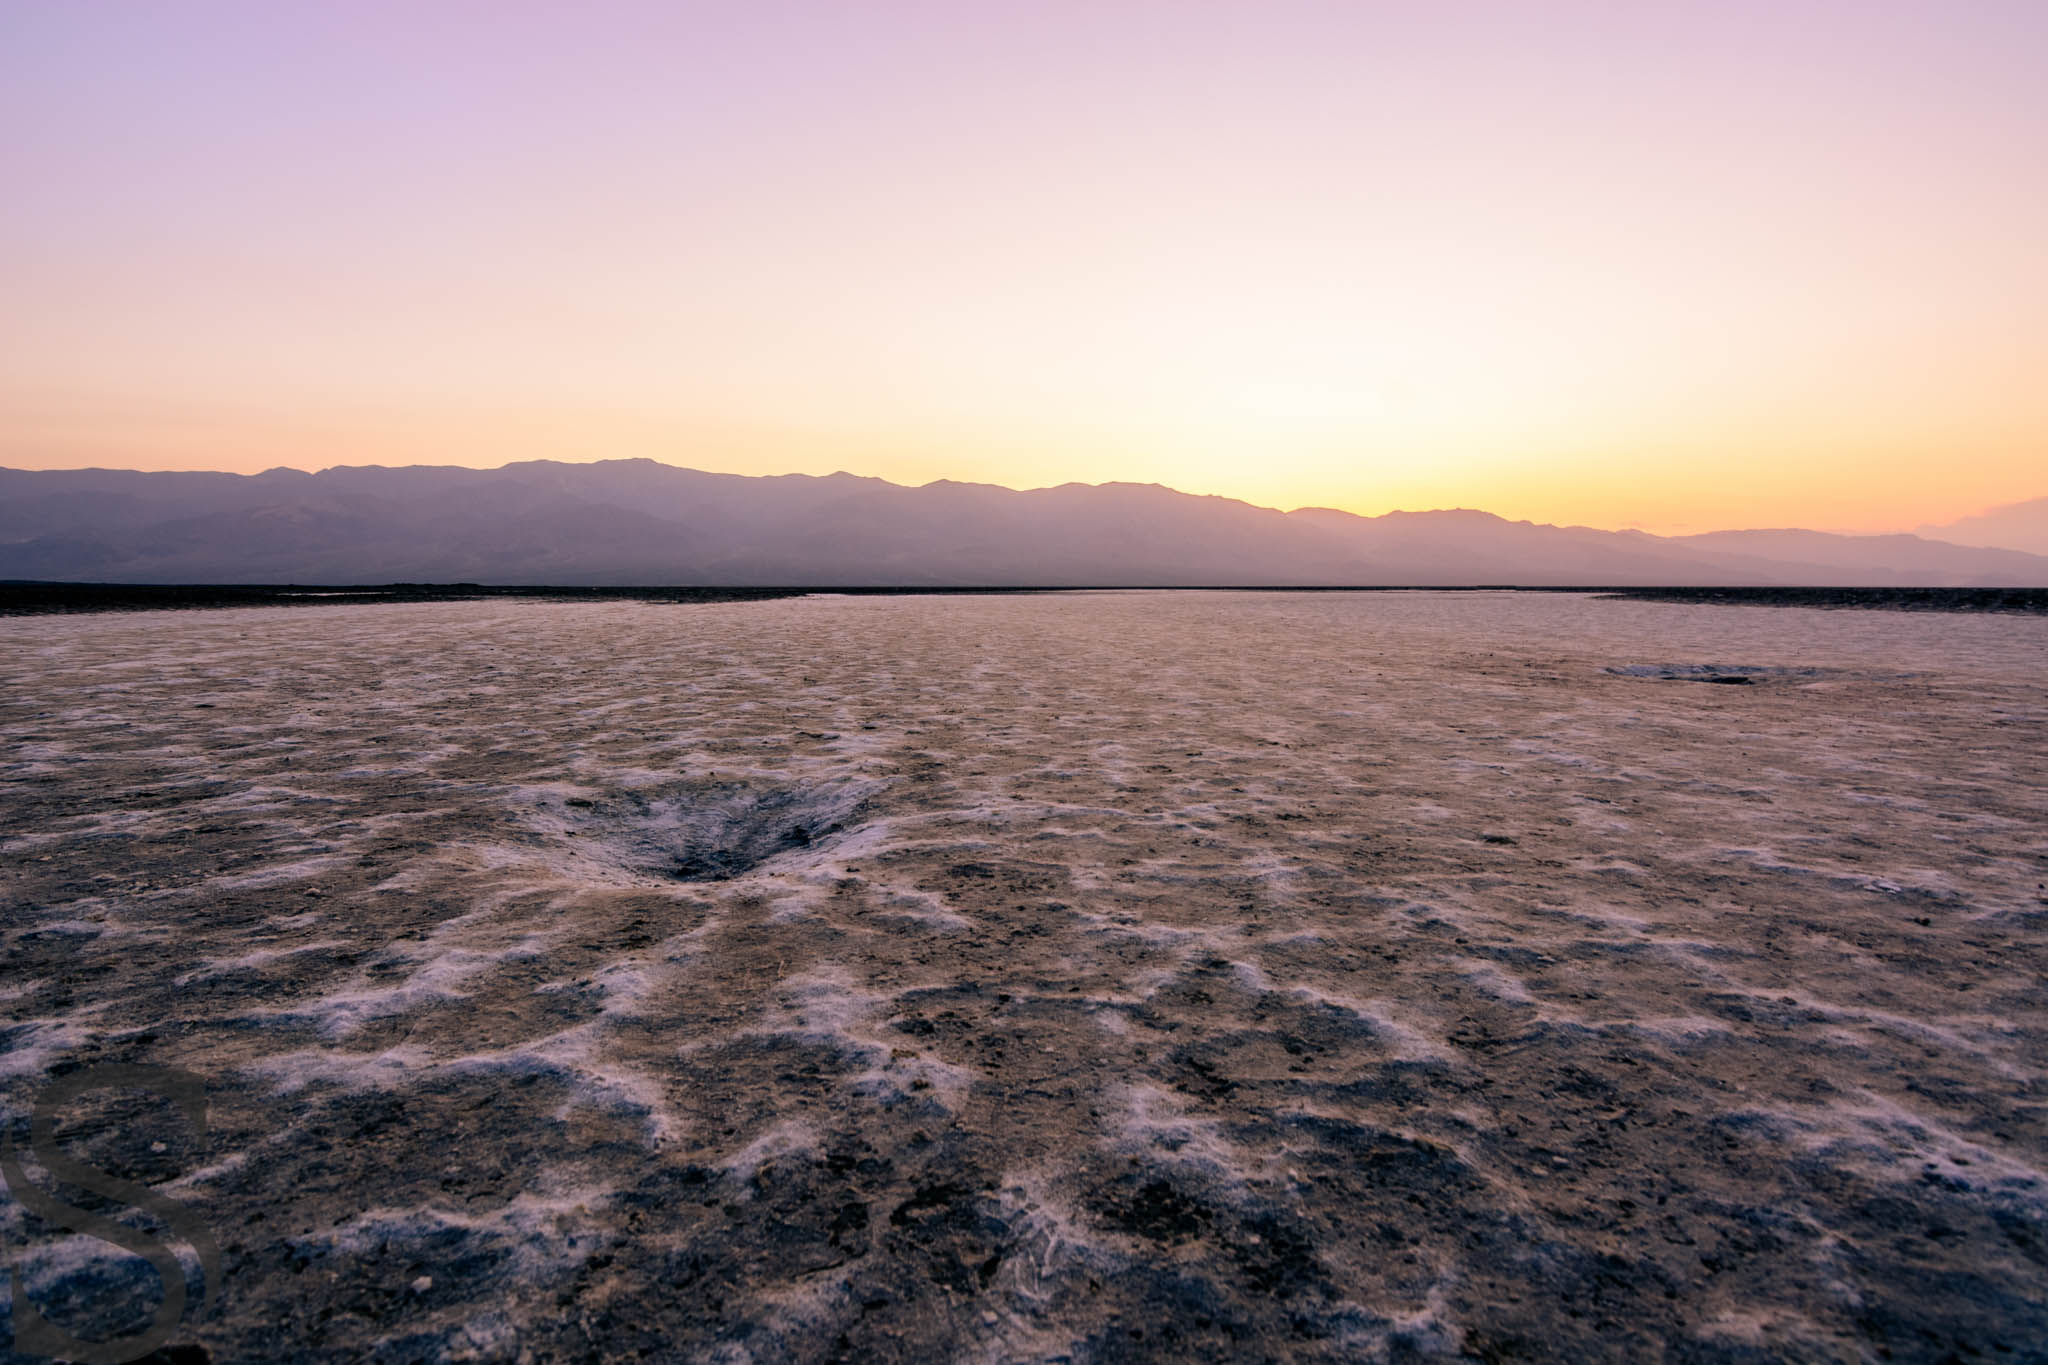 Accumulated Salt Flats at Badwater Basin